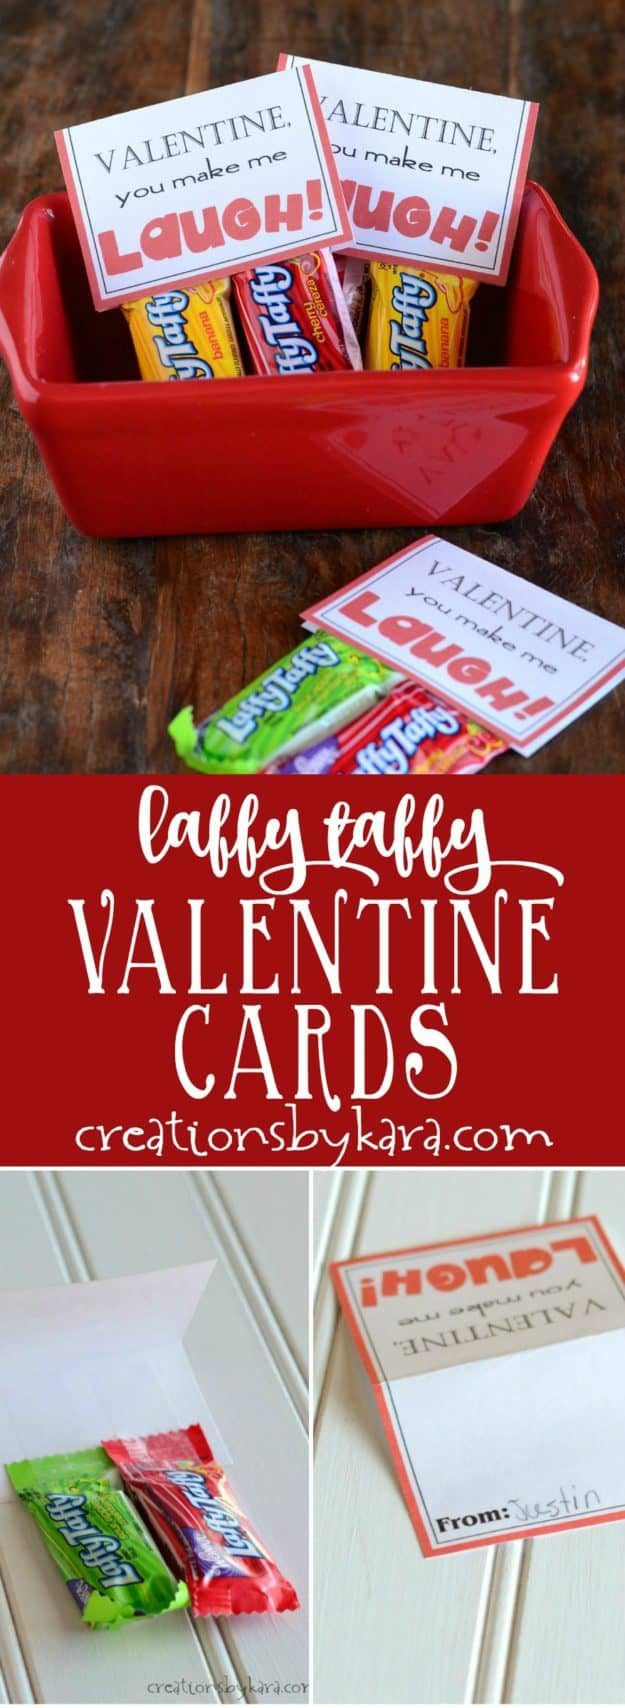 Laffy Taffy Printable Valentine Card collage